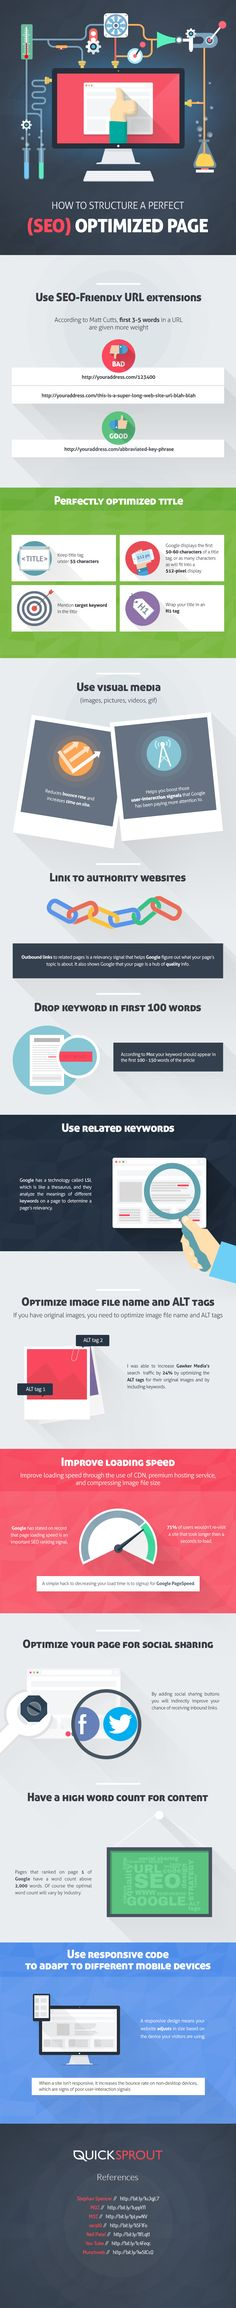 How to Structure a Perfect SEO Optimized Page | via #BornToBeSocial, Pinterest Marketing | http://borntobesocial.com